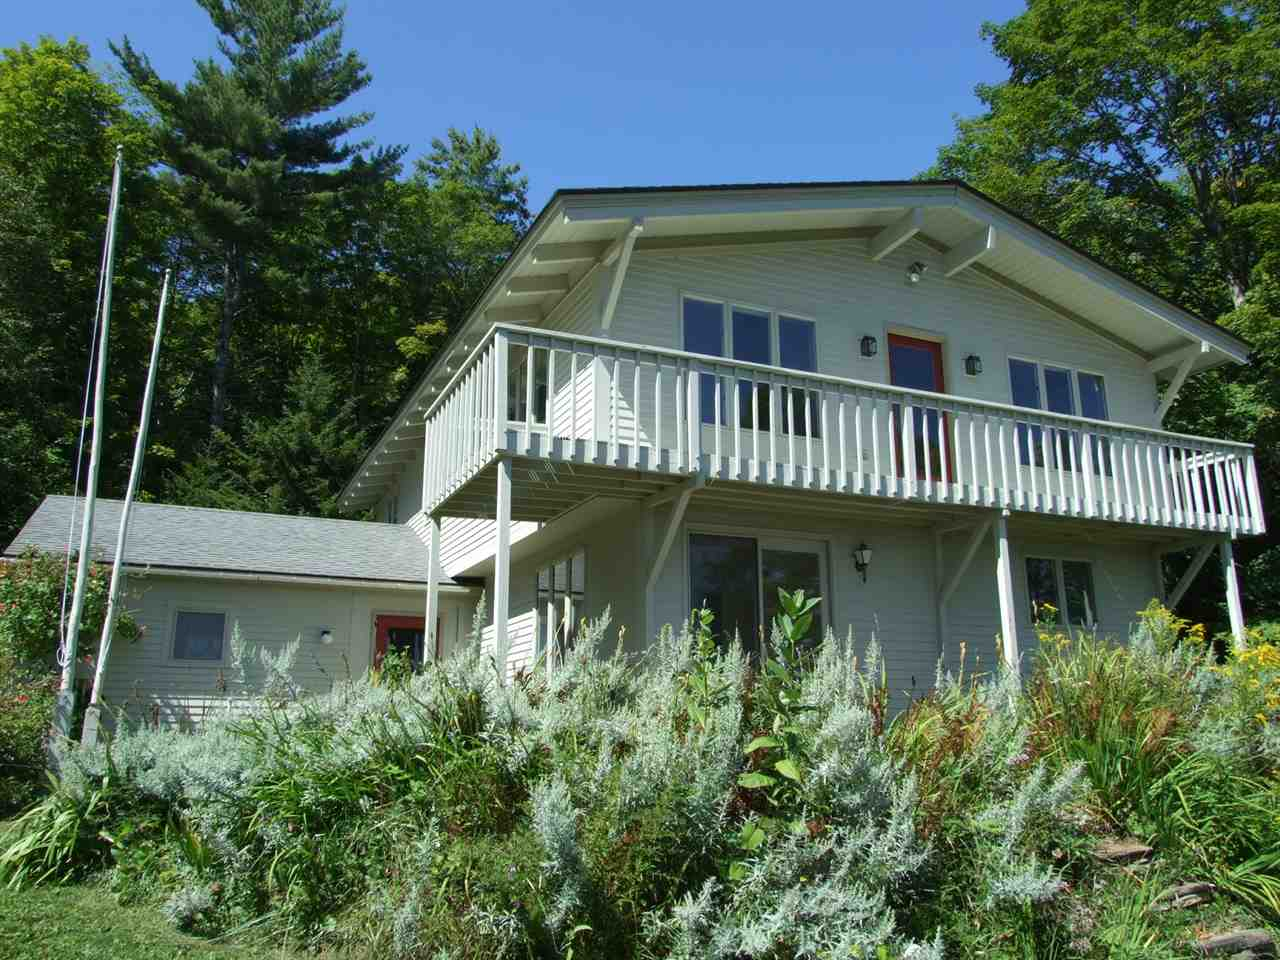 Open floorplan, 4 bedroom home on 18.93 acres in great Reading location with view of Mt Ascutney, nice open field & wooded acreage, lots of perennials. Separate small log studio with woodstove. Near trails.  Easy access to Okemo & Echo Lake!    (Road frontage is estimate)